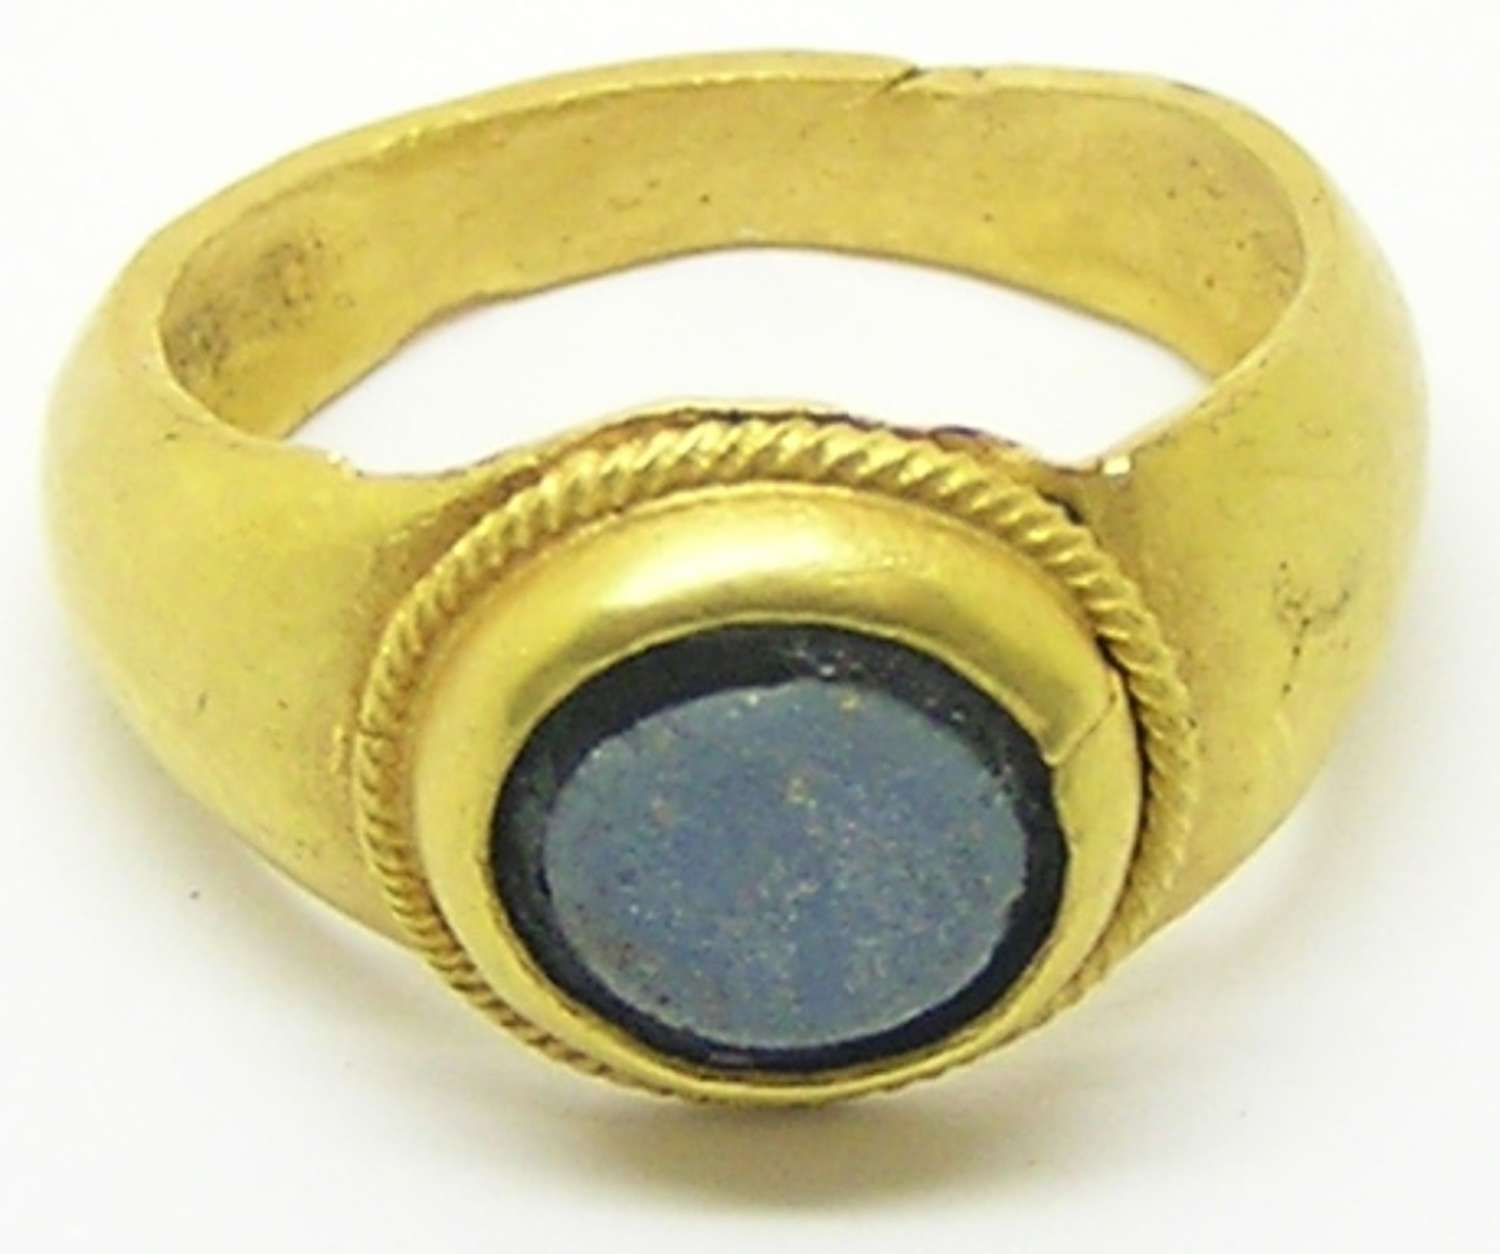 Roman gold finger ring nicolo paste setting Guiraud type 4